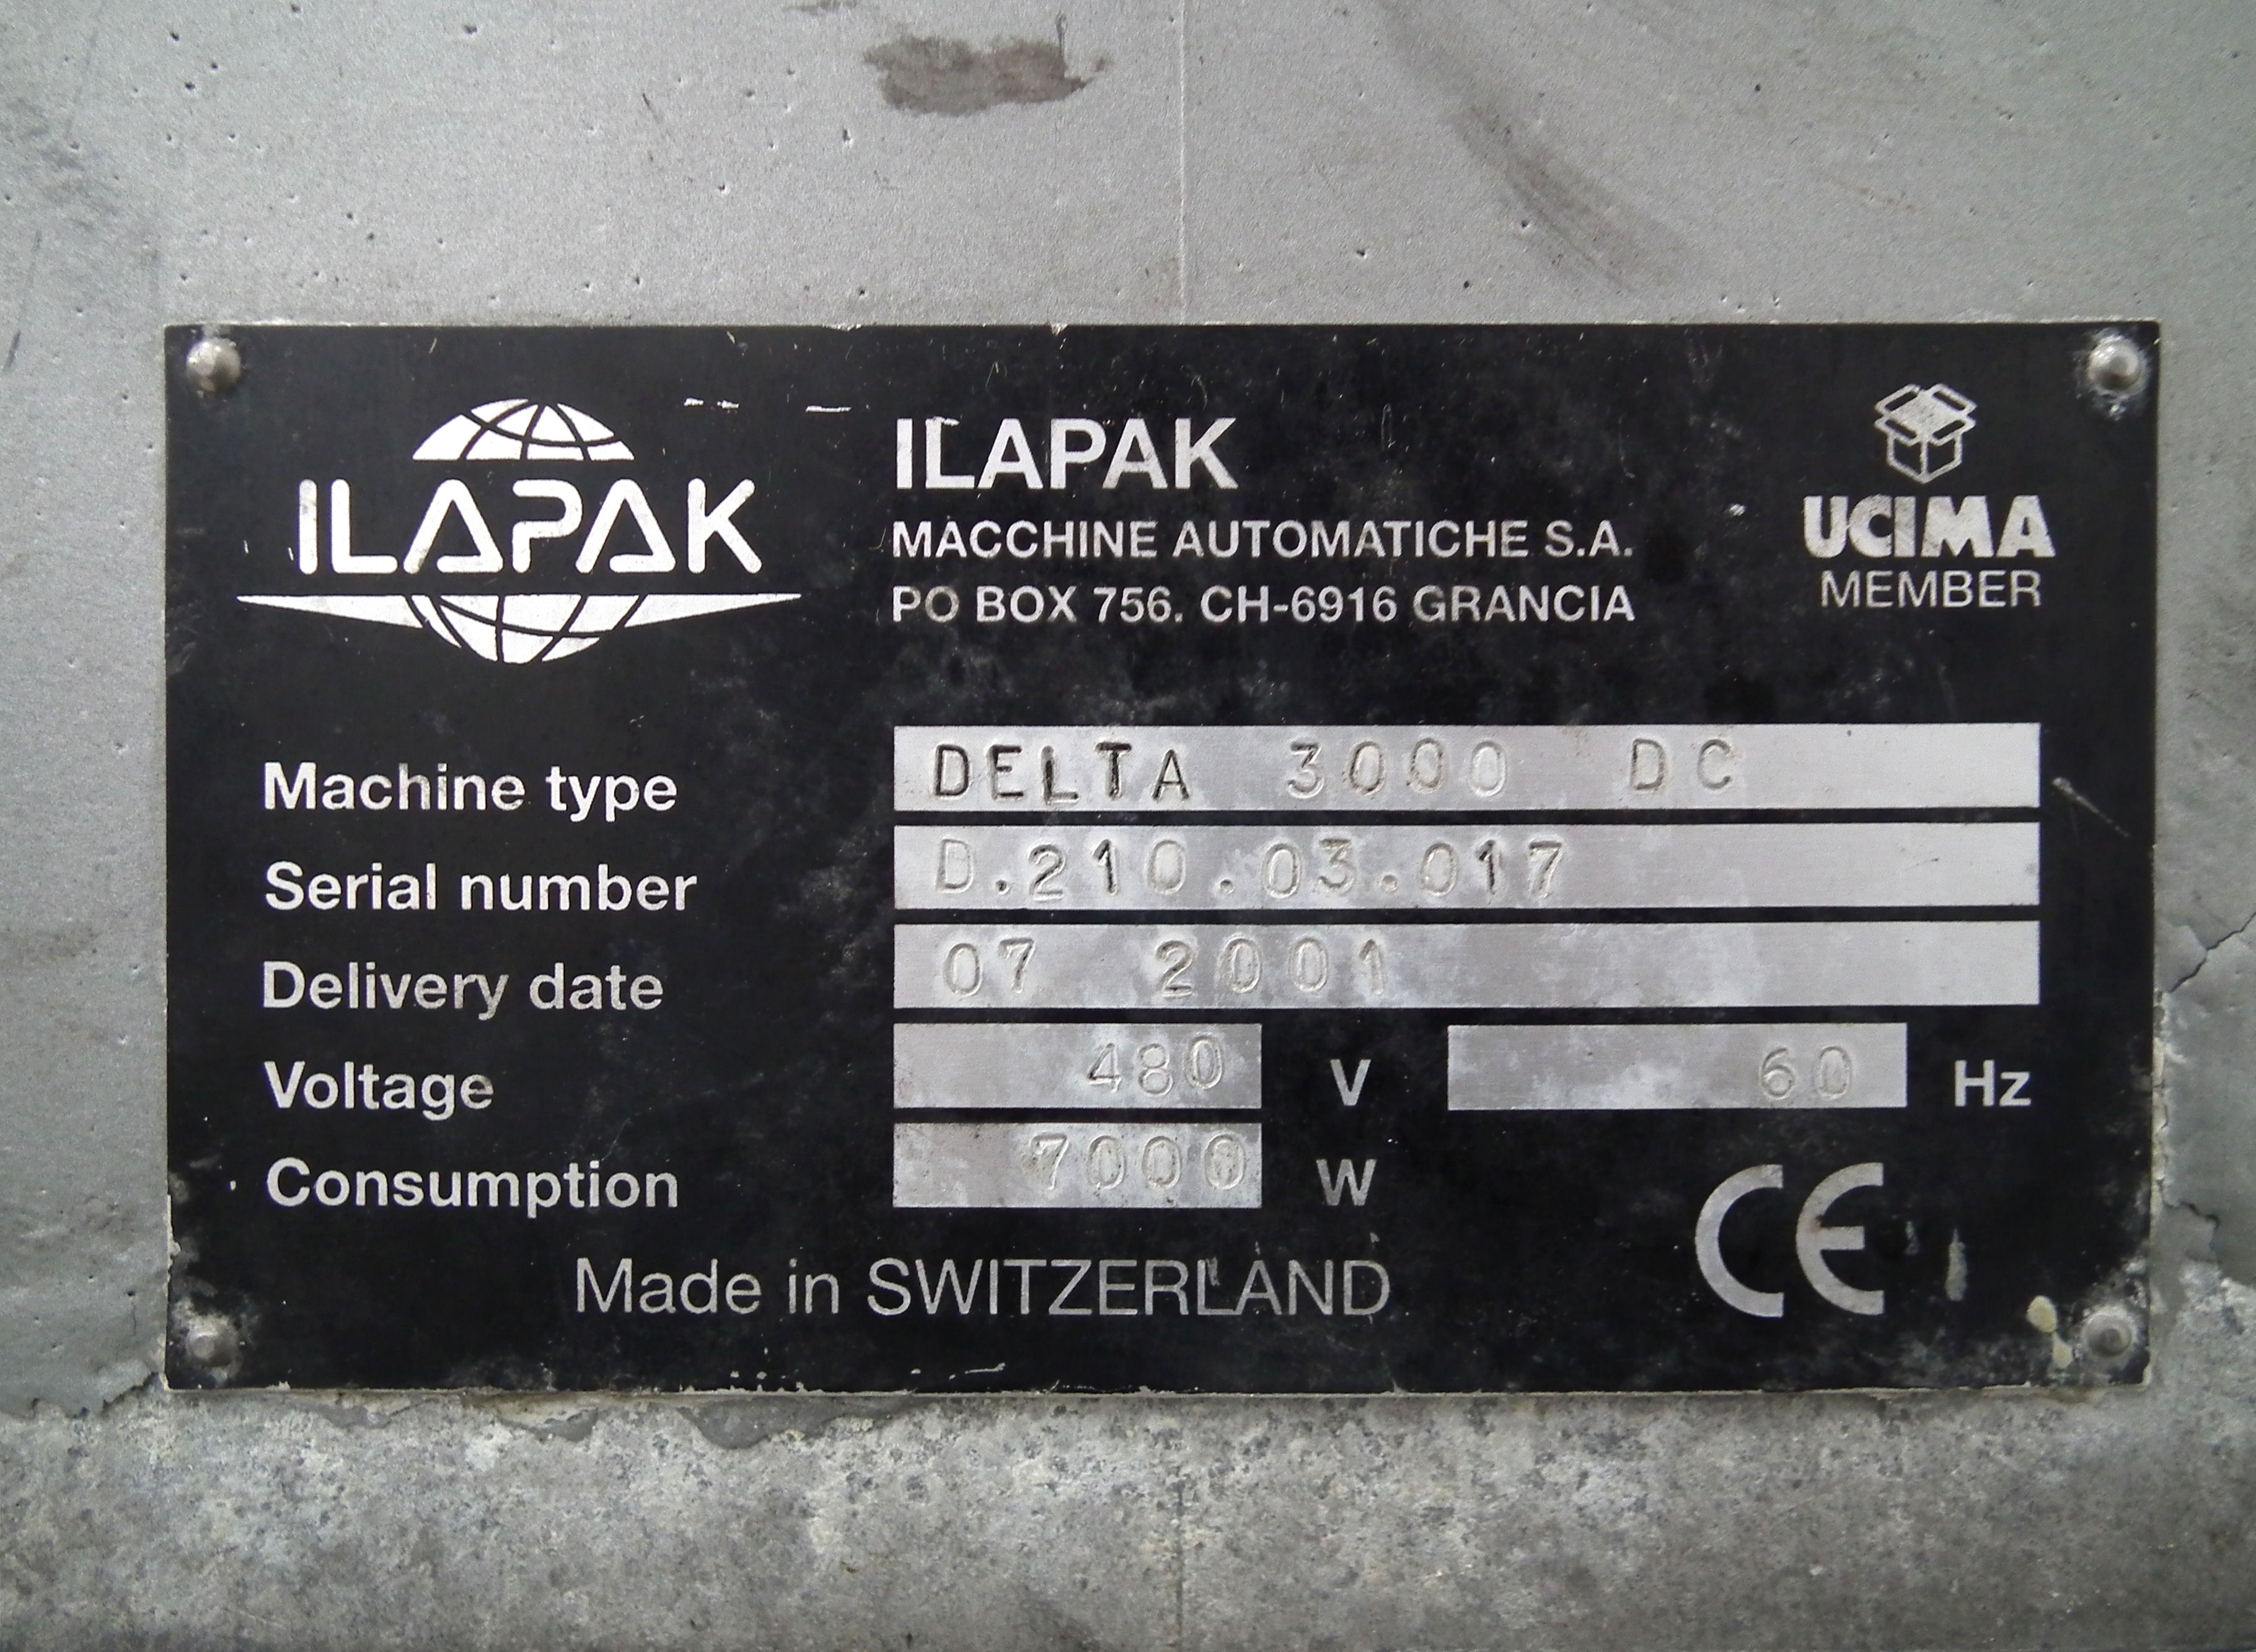 Ilapak Delta 3000 DC Wide Frame SS Wrapper B4828 - Image 11 of 11